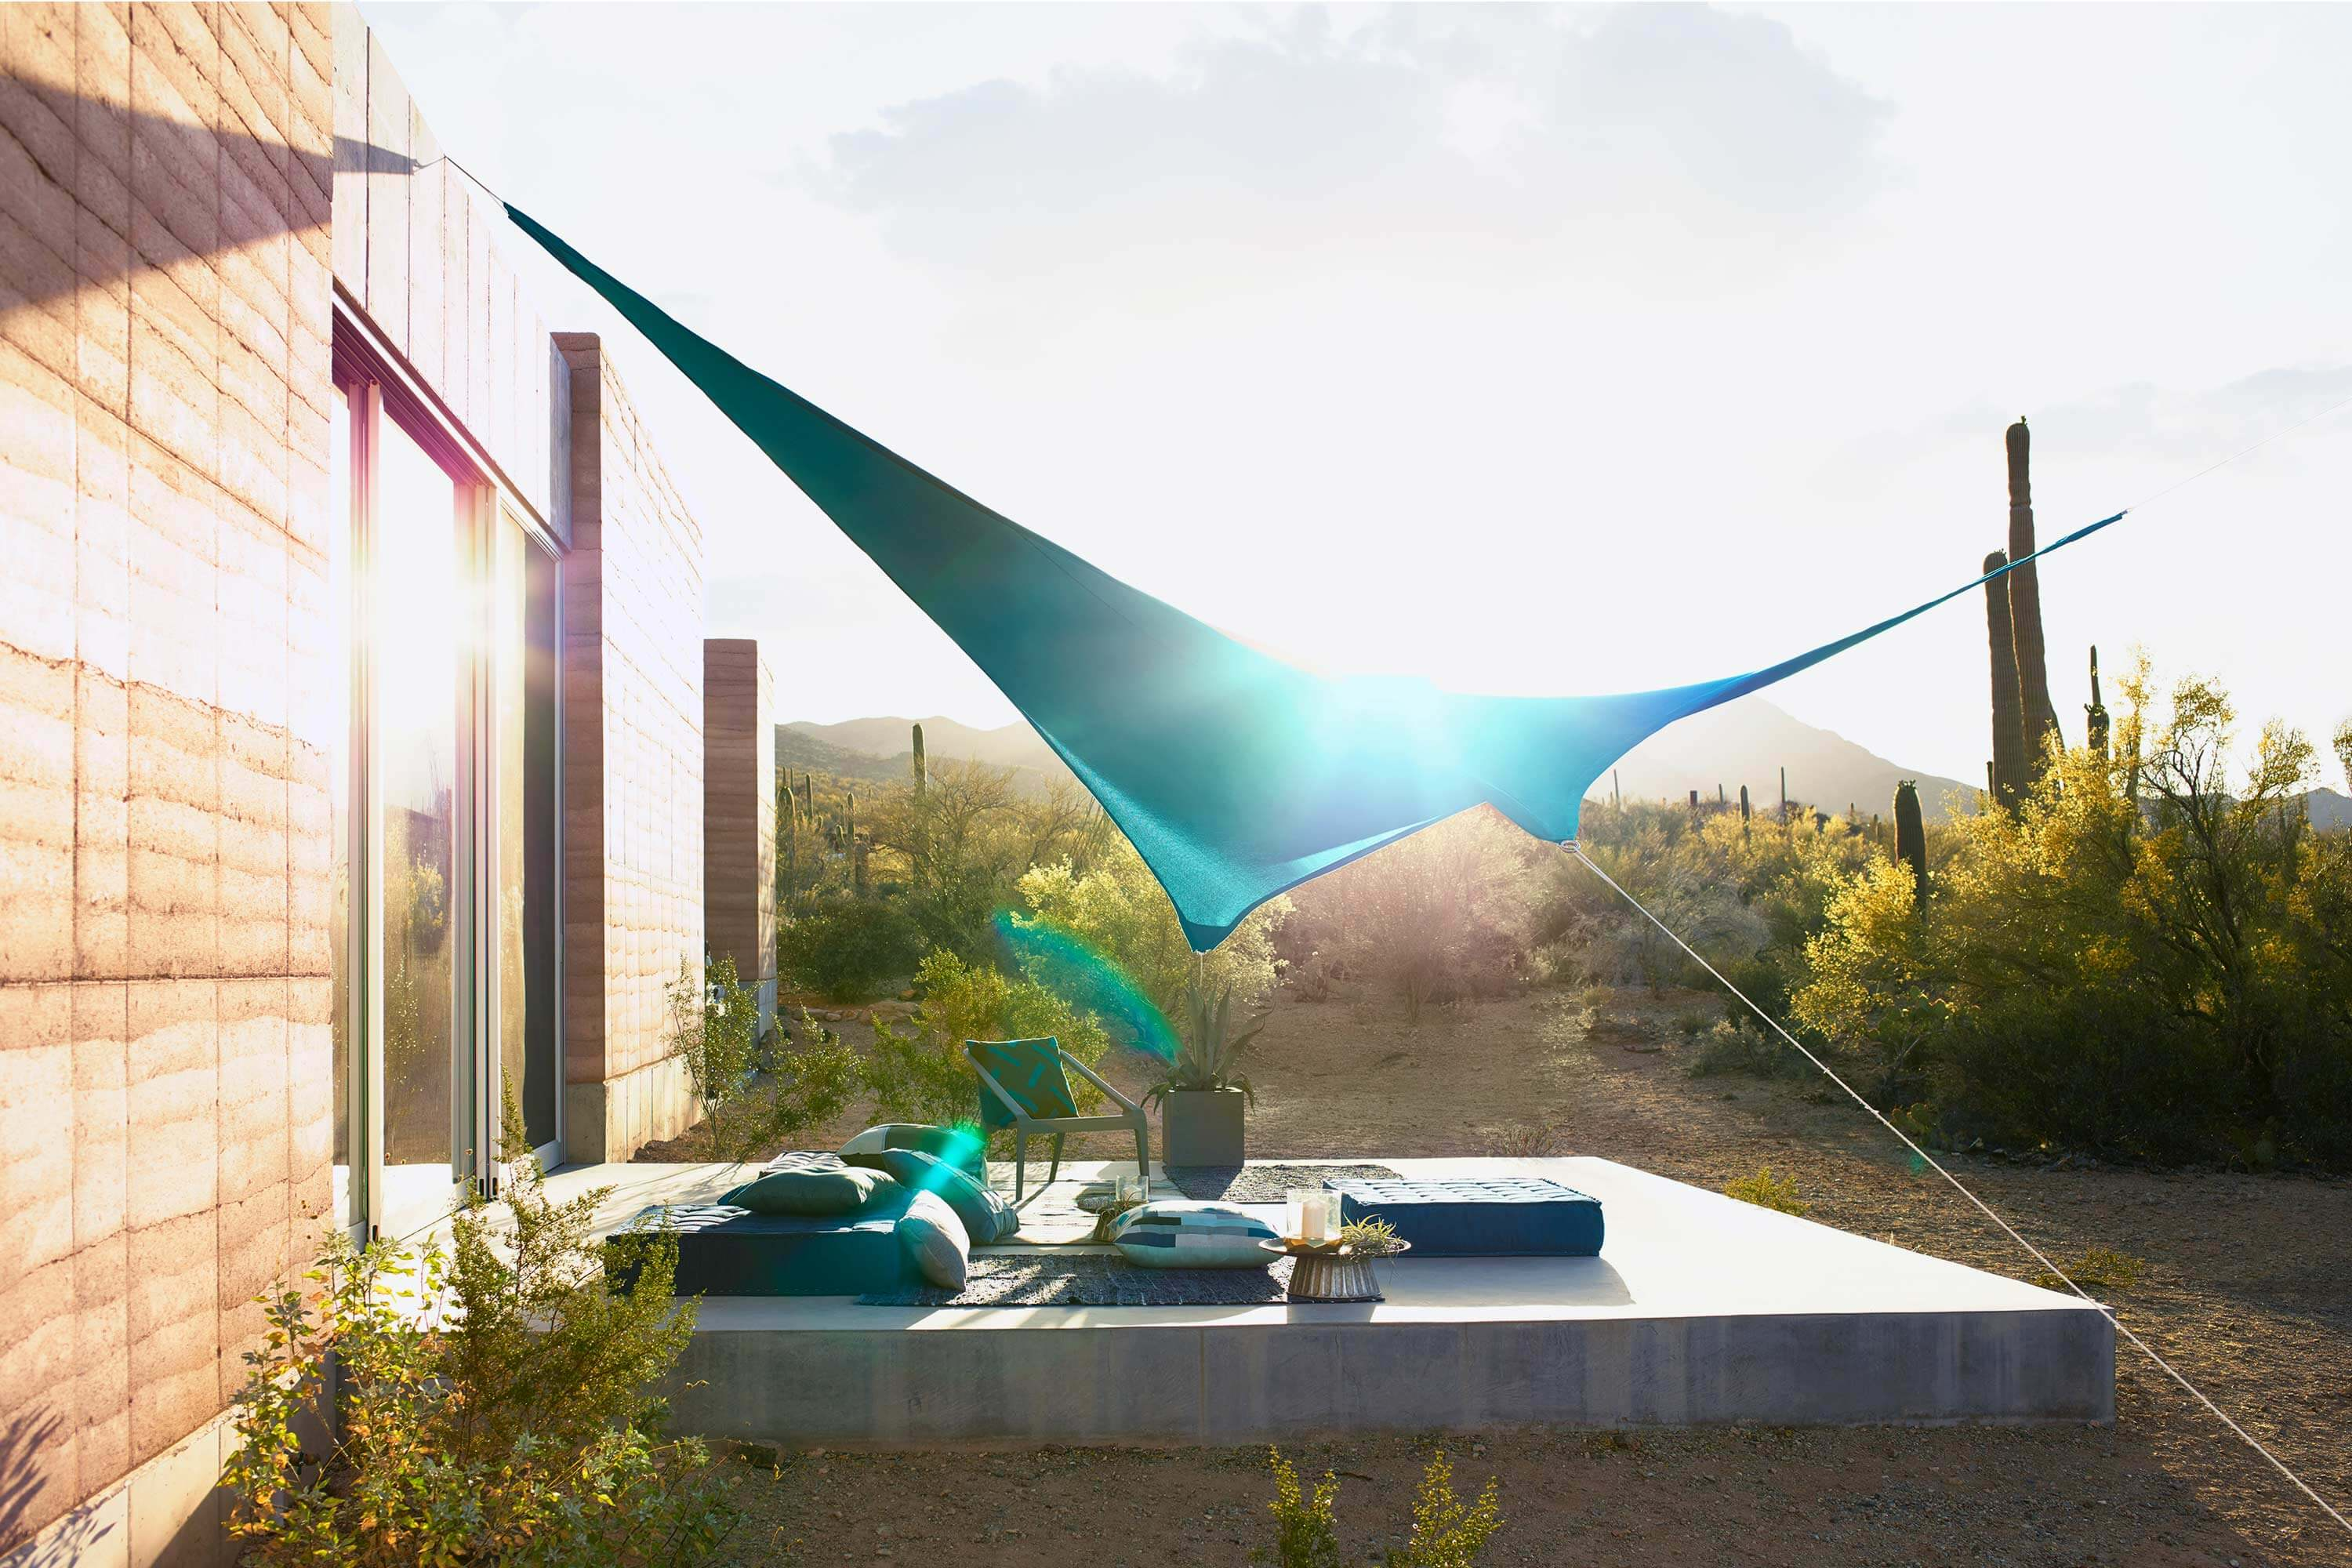 Merveilleux Outdoor Patio In The Desert Covered With Shade Sail Made Using Teal  Sunbrella Contour Fabric